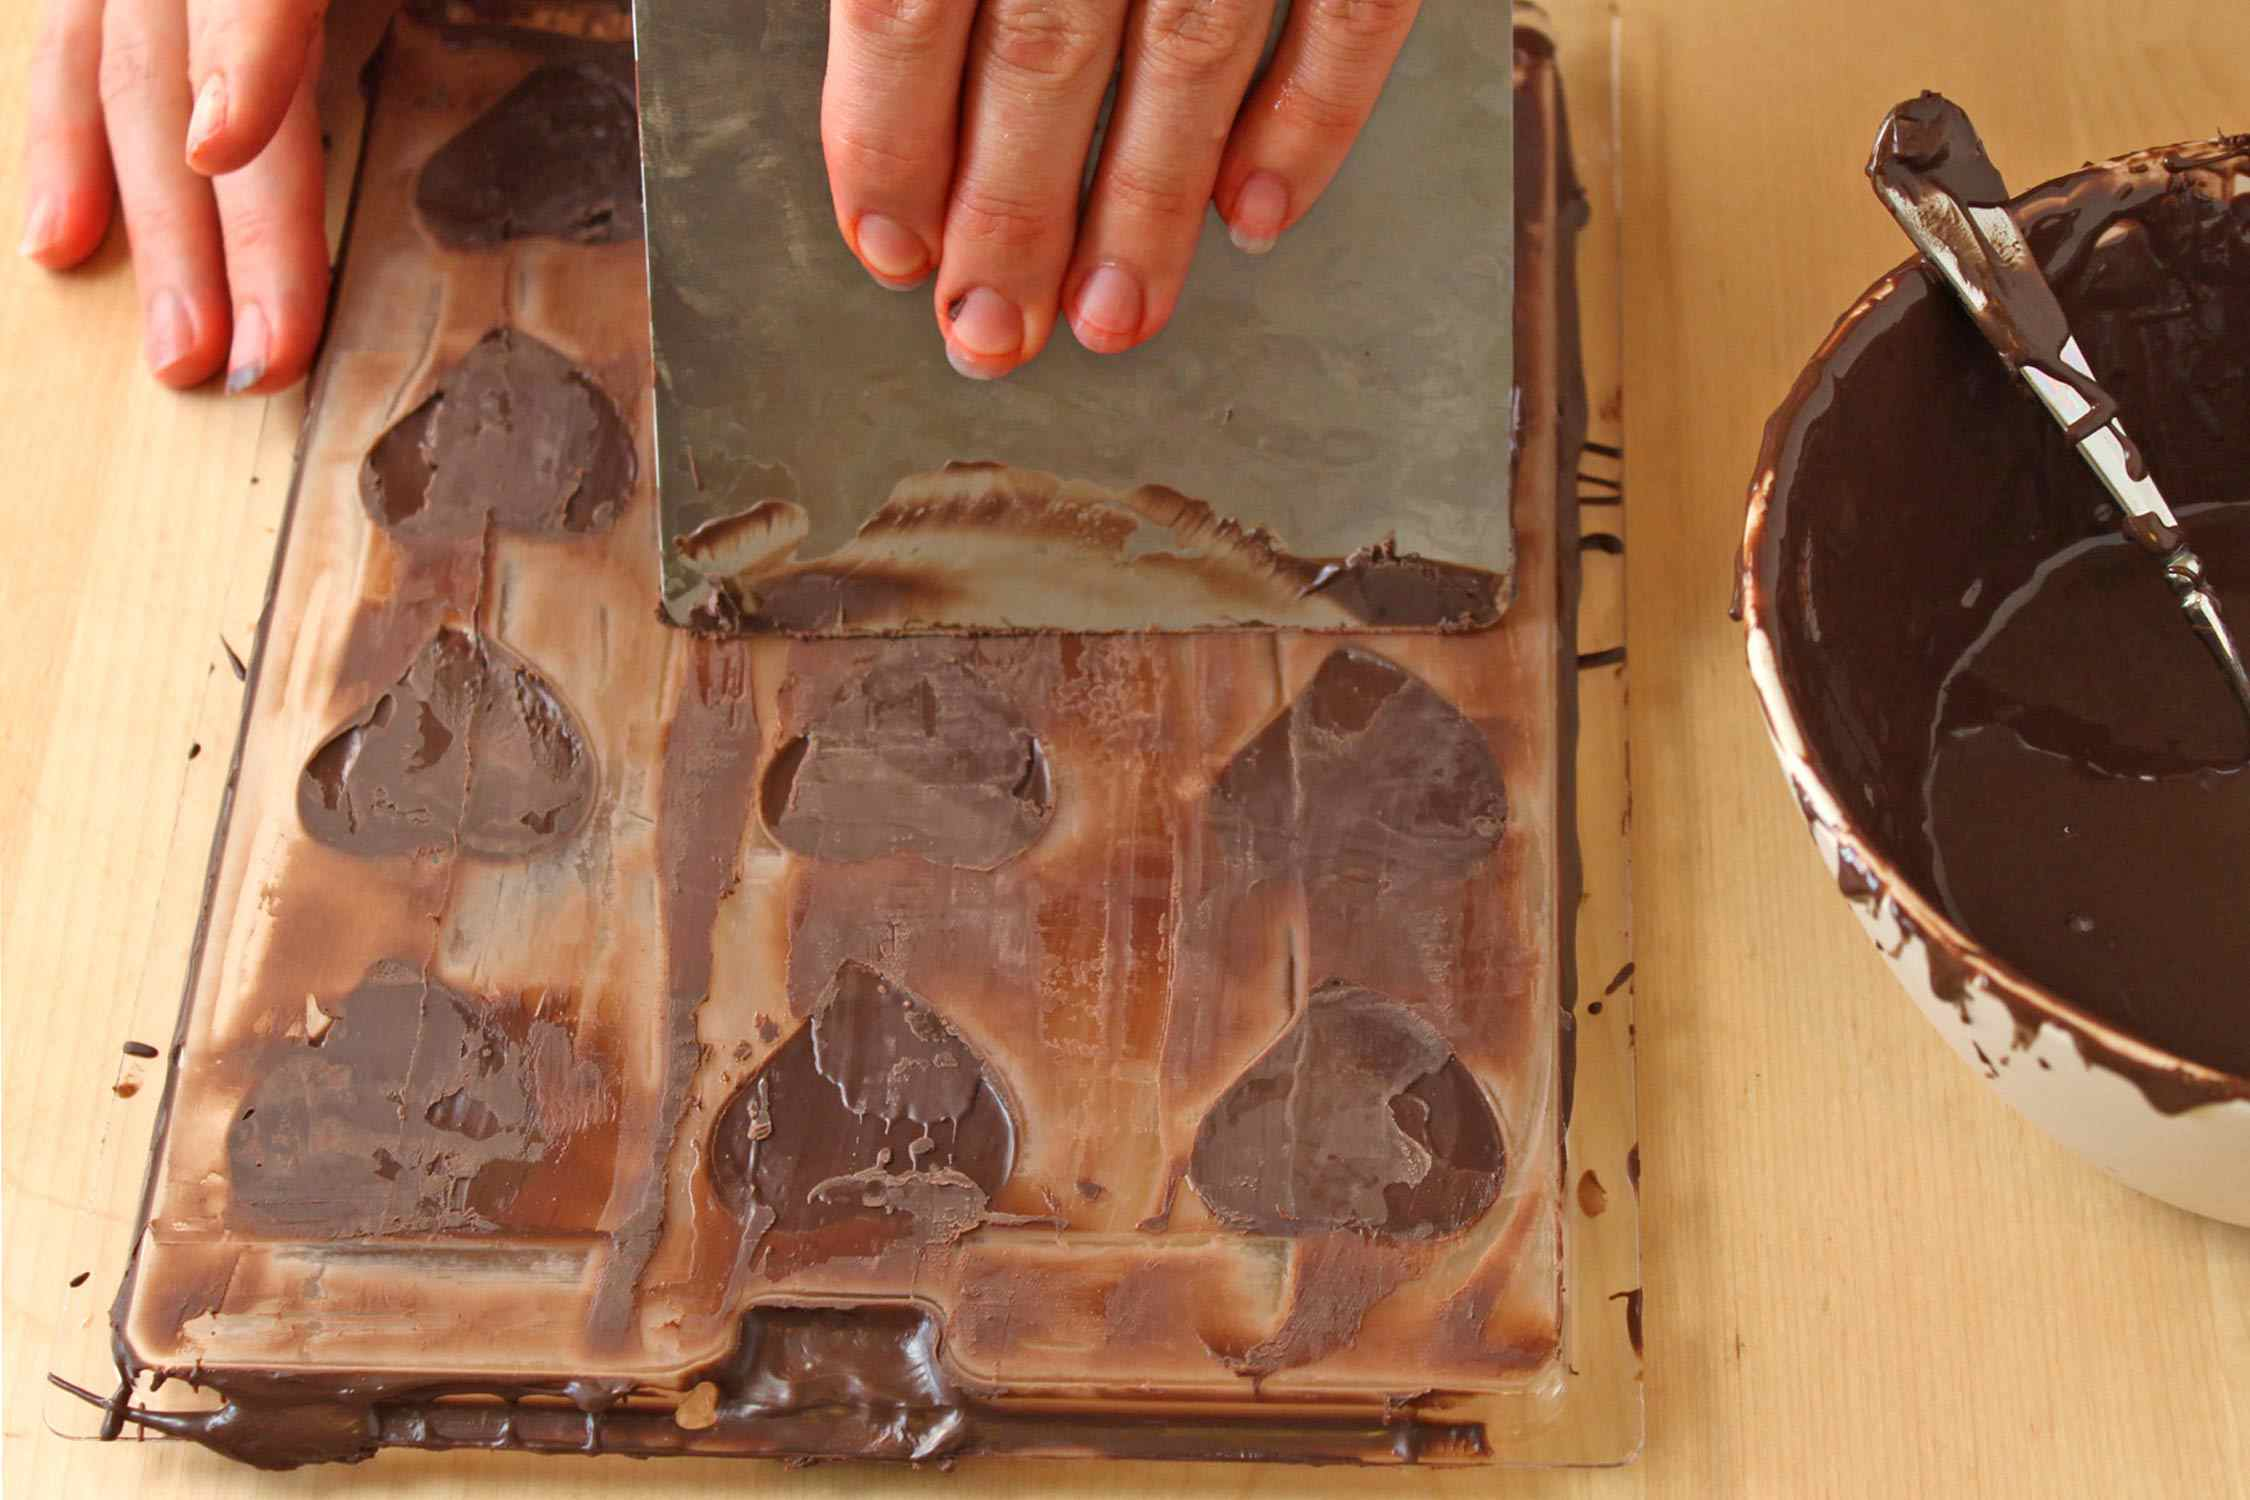 Scraping chocolate from top of chocolates in candy mold